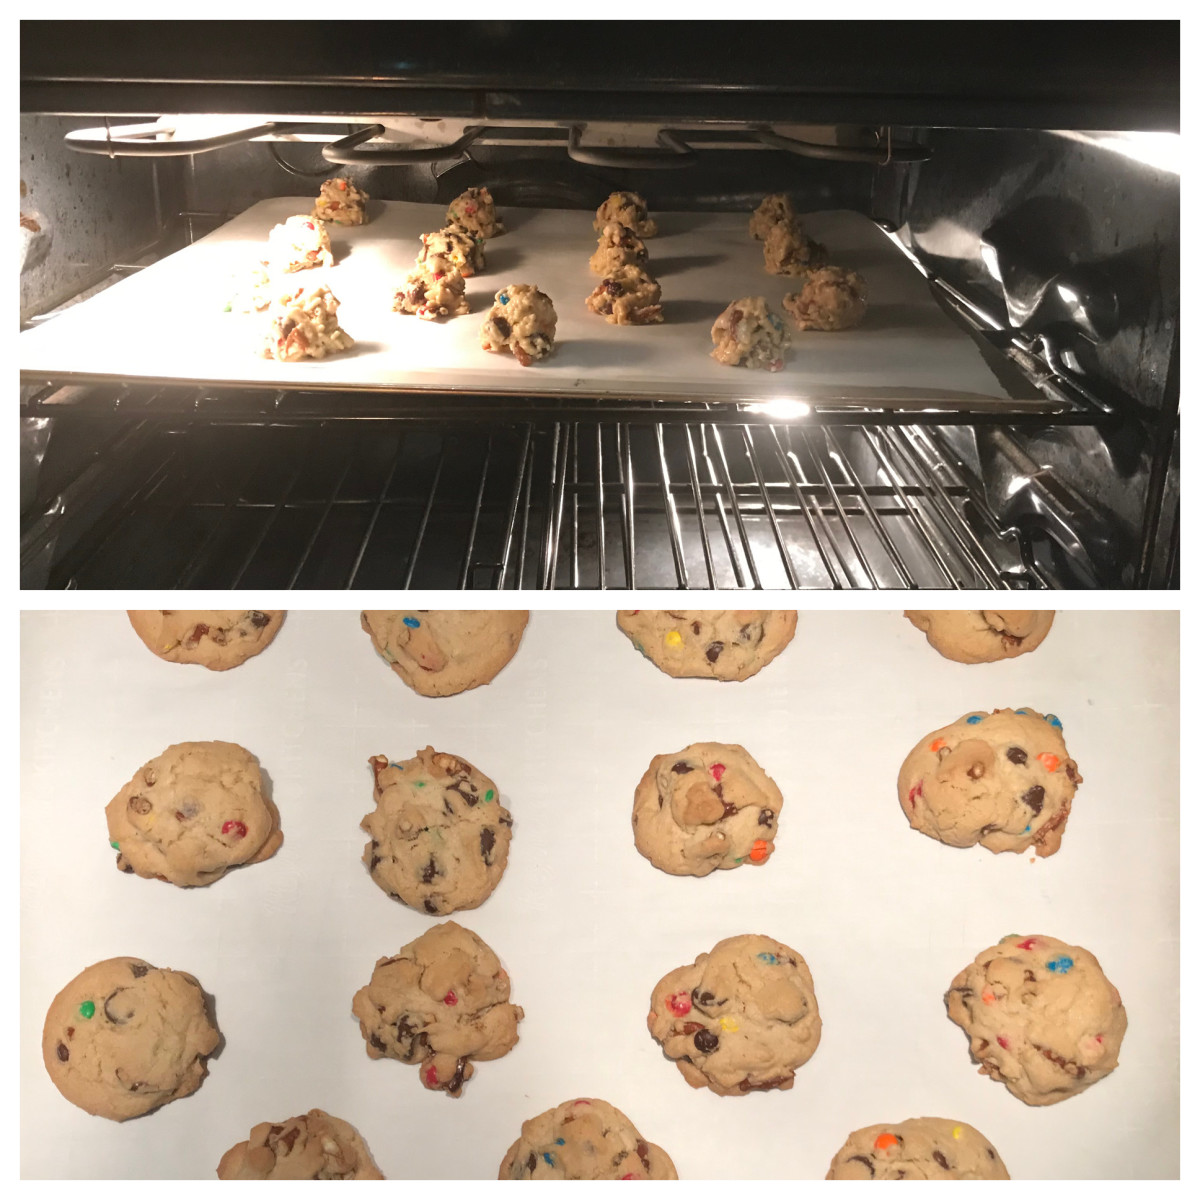 Kitchen Sink Cookies made with chocolates and pretzels.